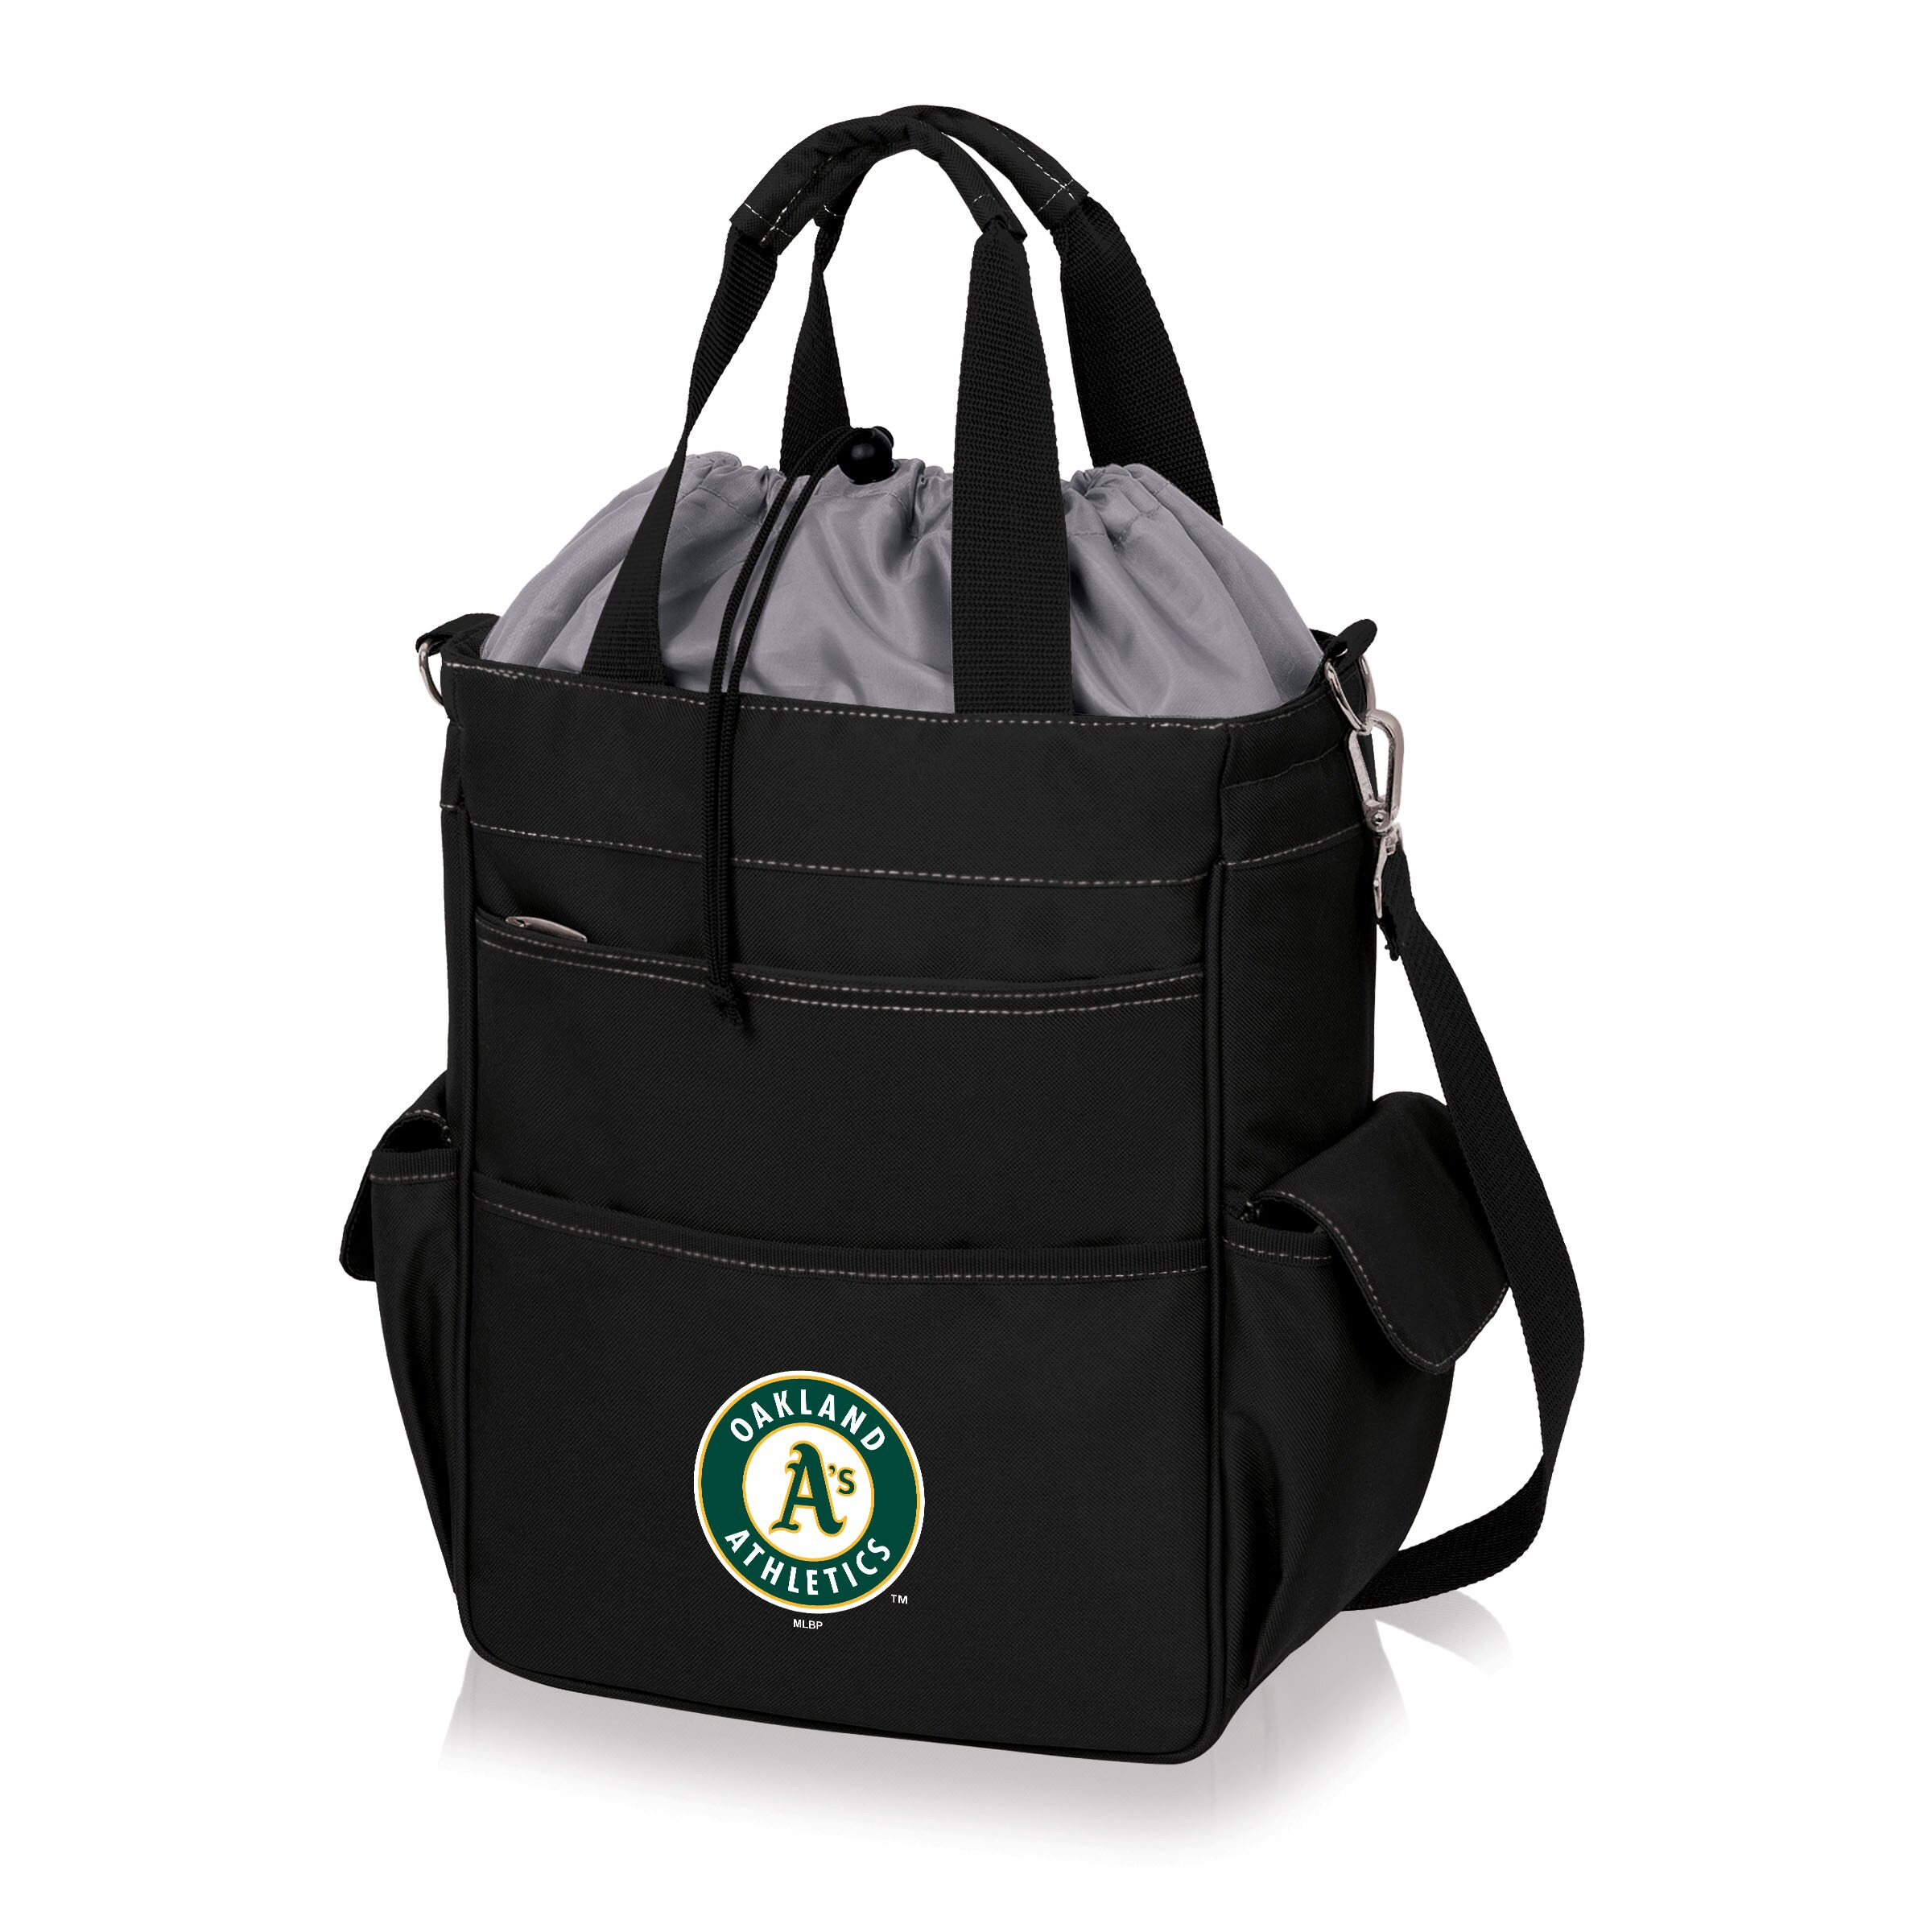 Oakland Athletics Activo Cooler Tote - Black